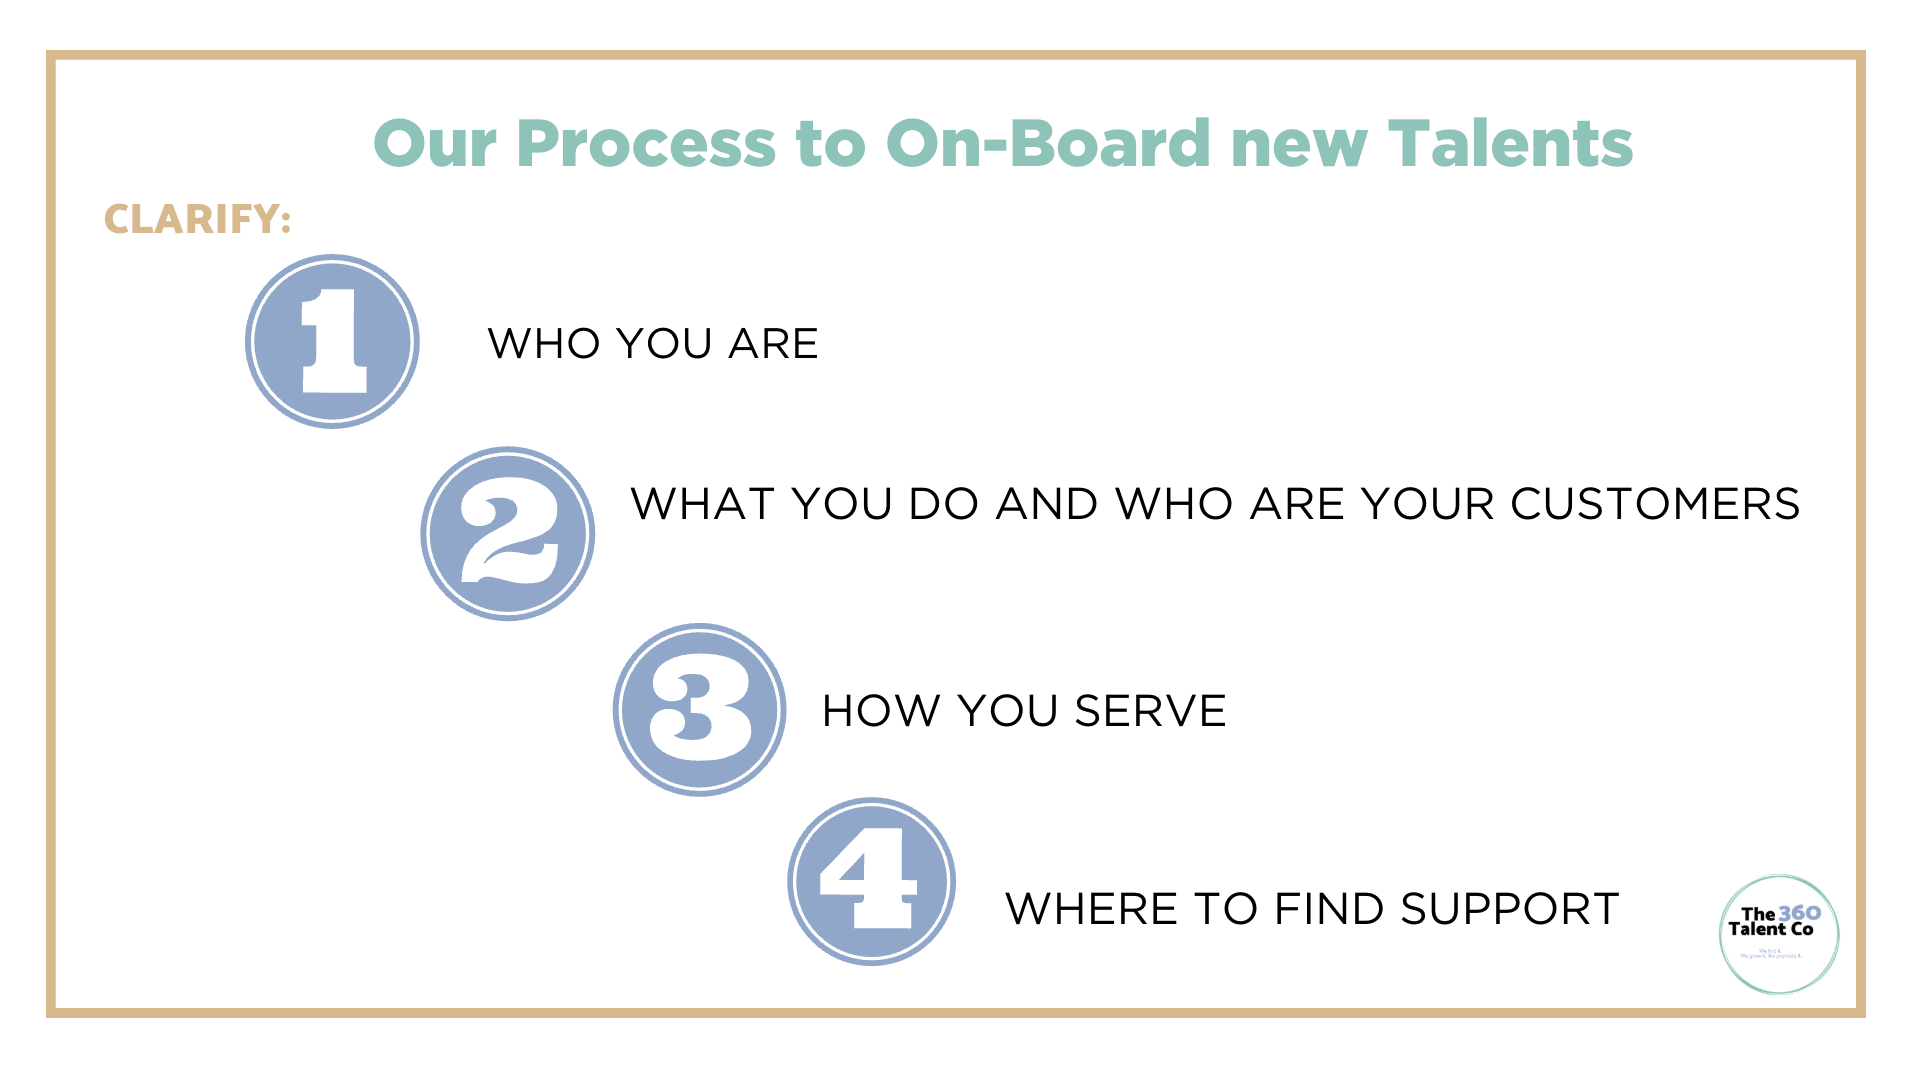 The360Talent.Co Talent Onboarding Process